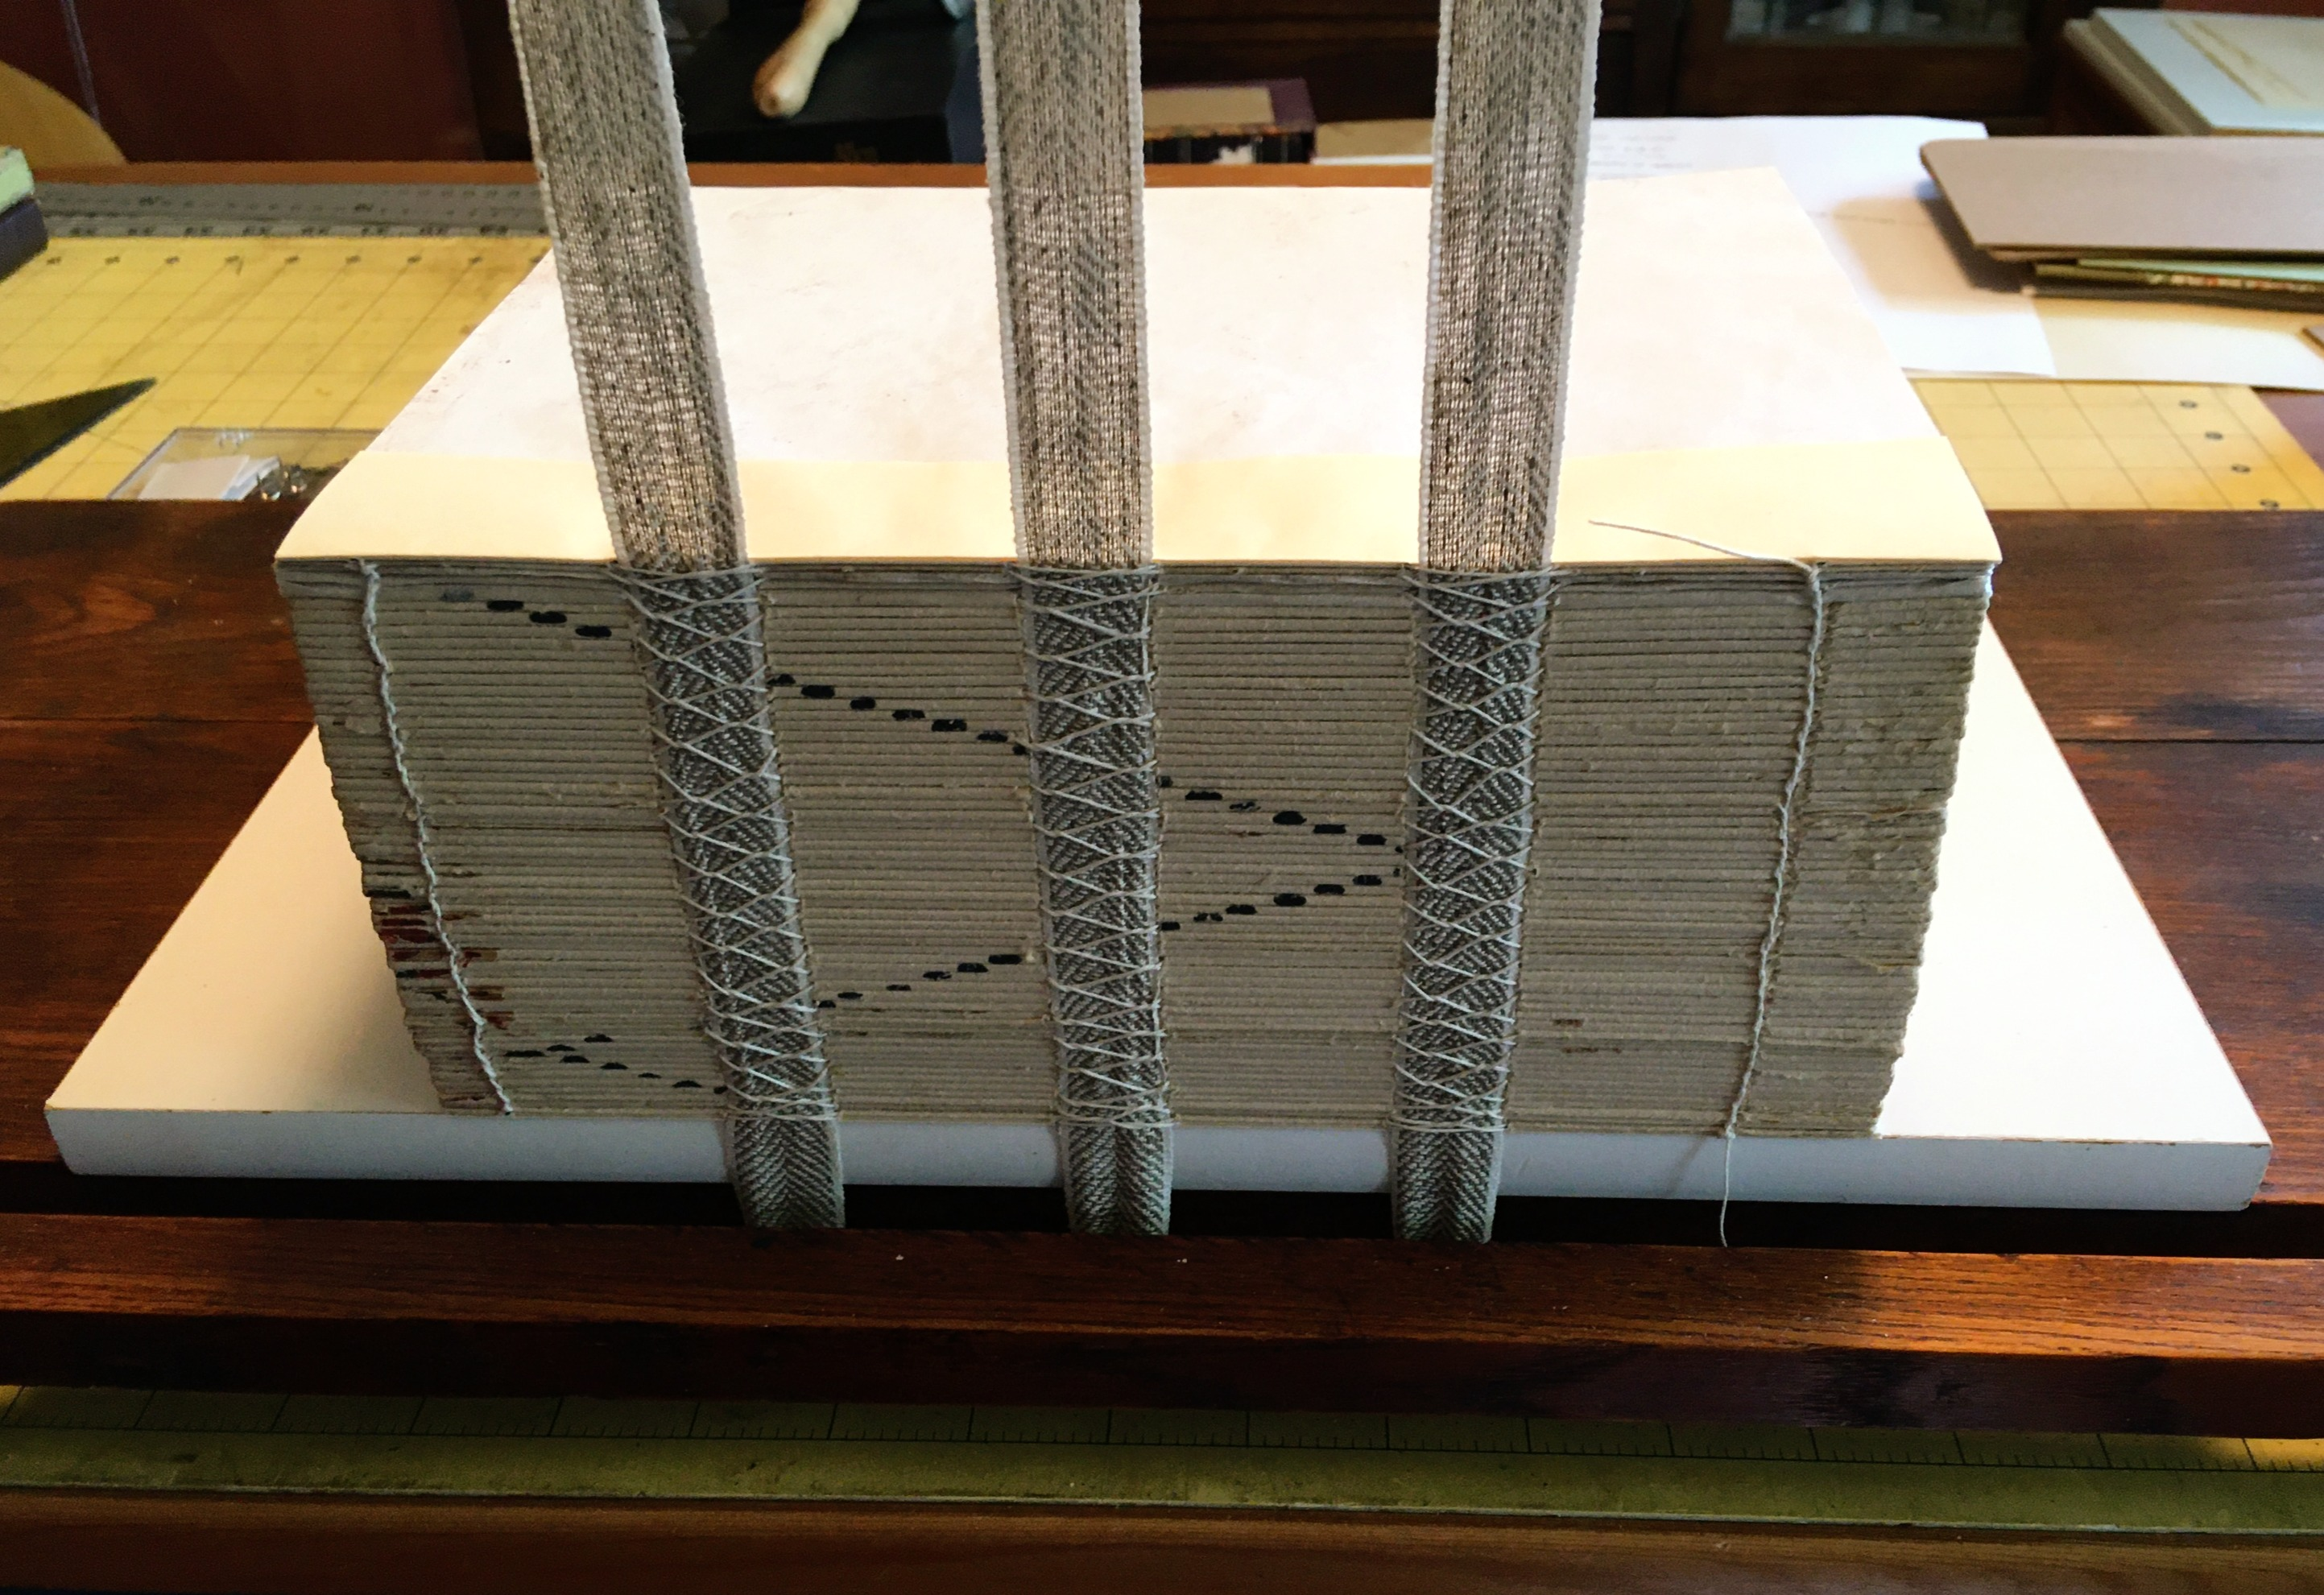 Book getting newly sewn during bookbinding